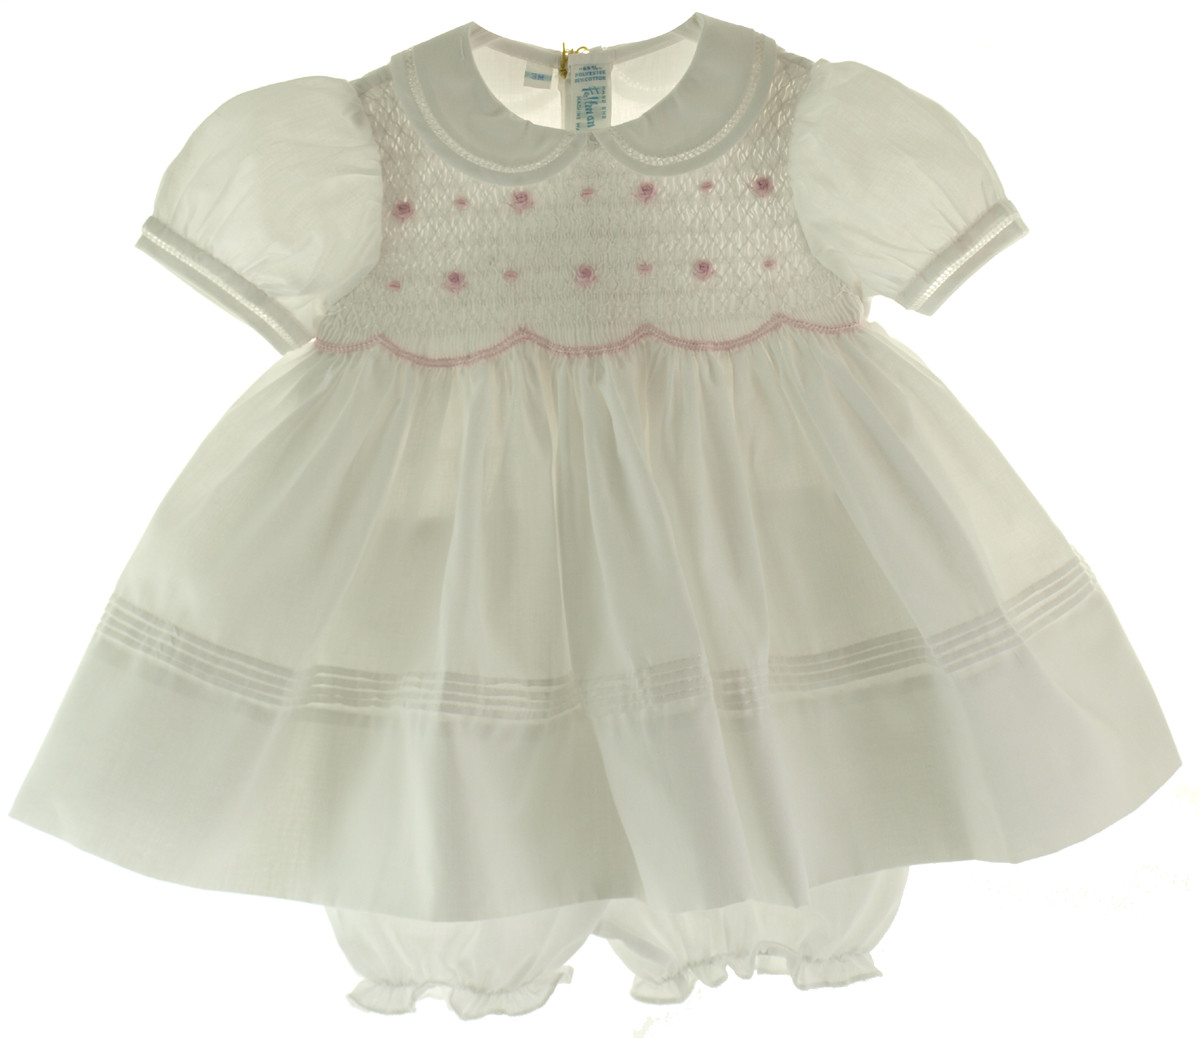 Smocked Christmas Dress.Feltman Brothers White Pink Smocked Infant Girls Dress